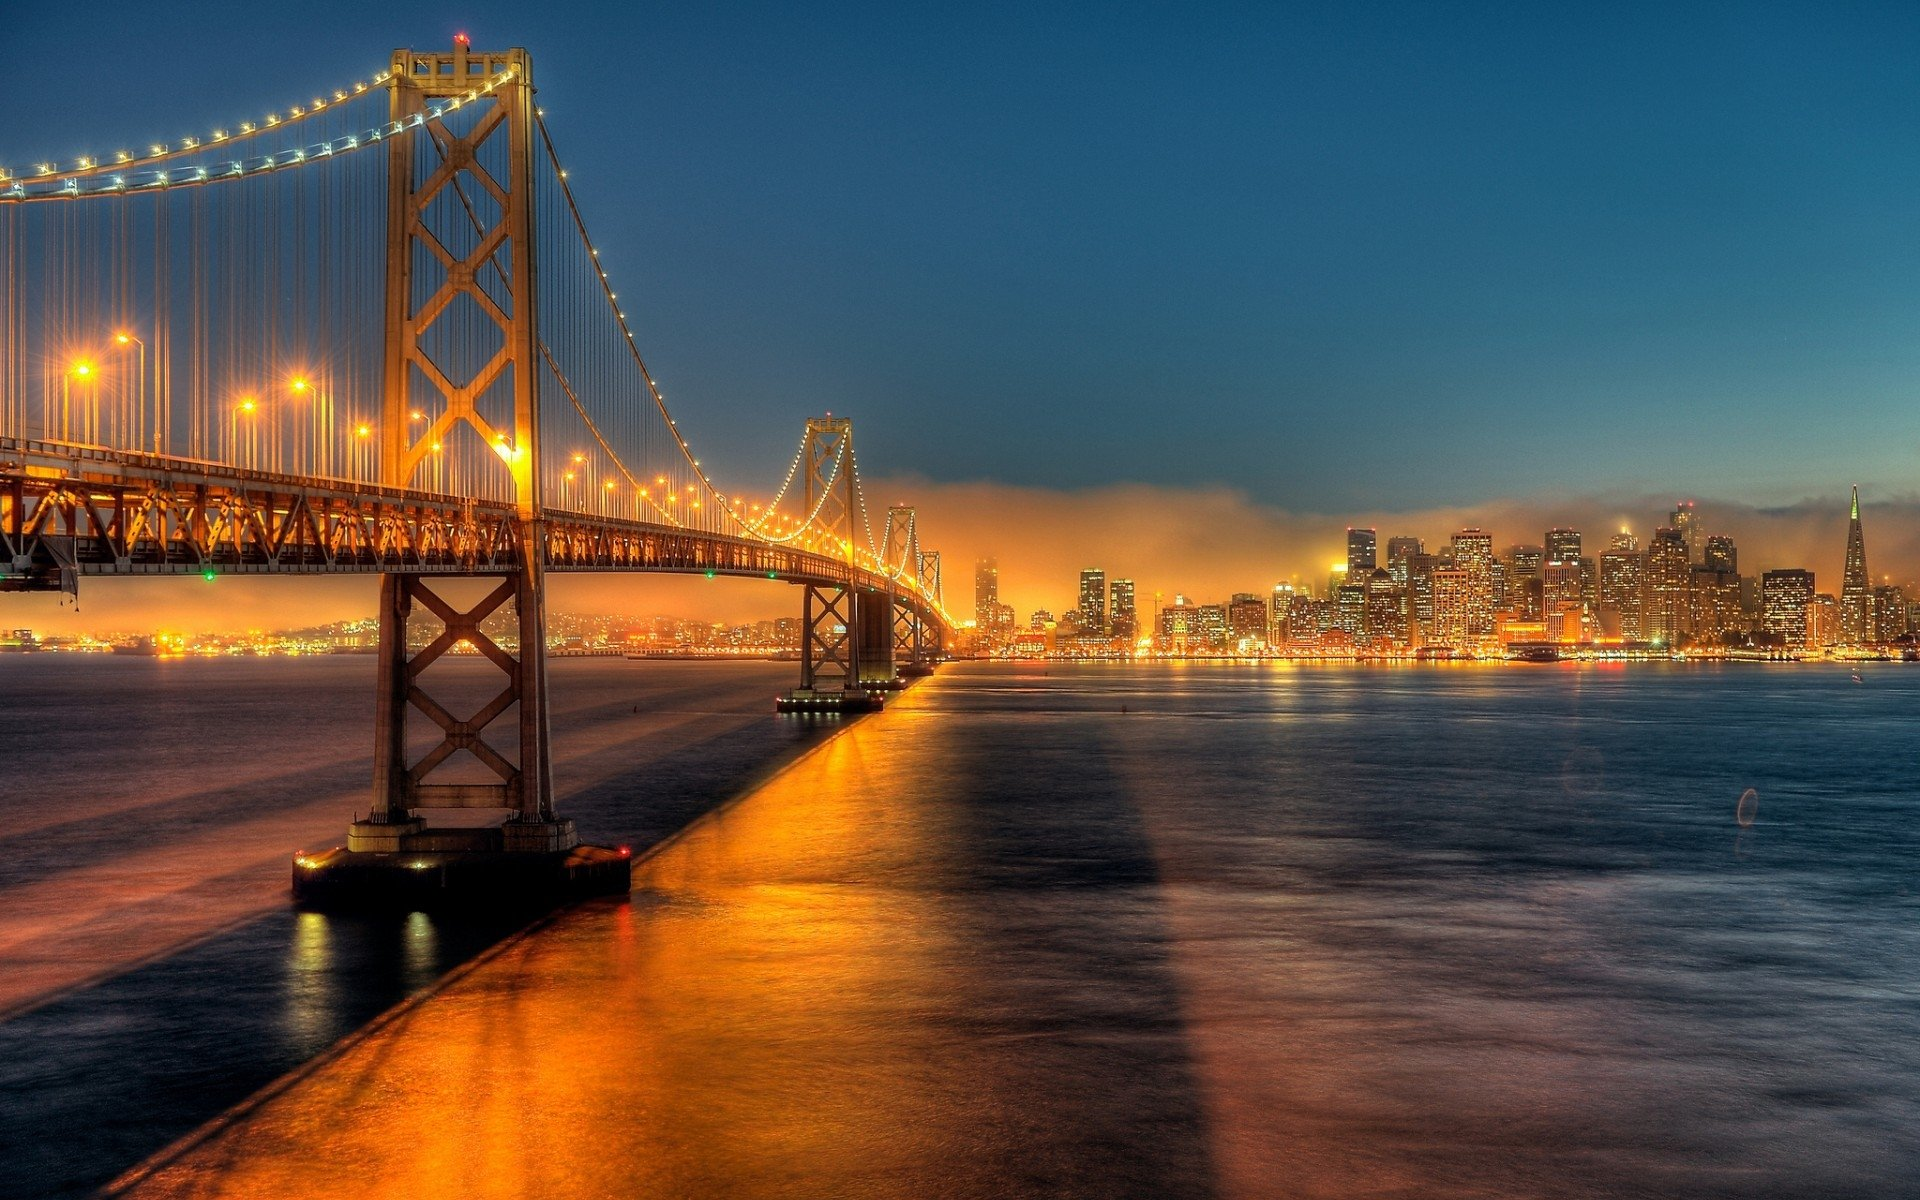 Man Made - Bay Bridge  Night City Bride California San Francisco Light River Wallpaper